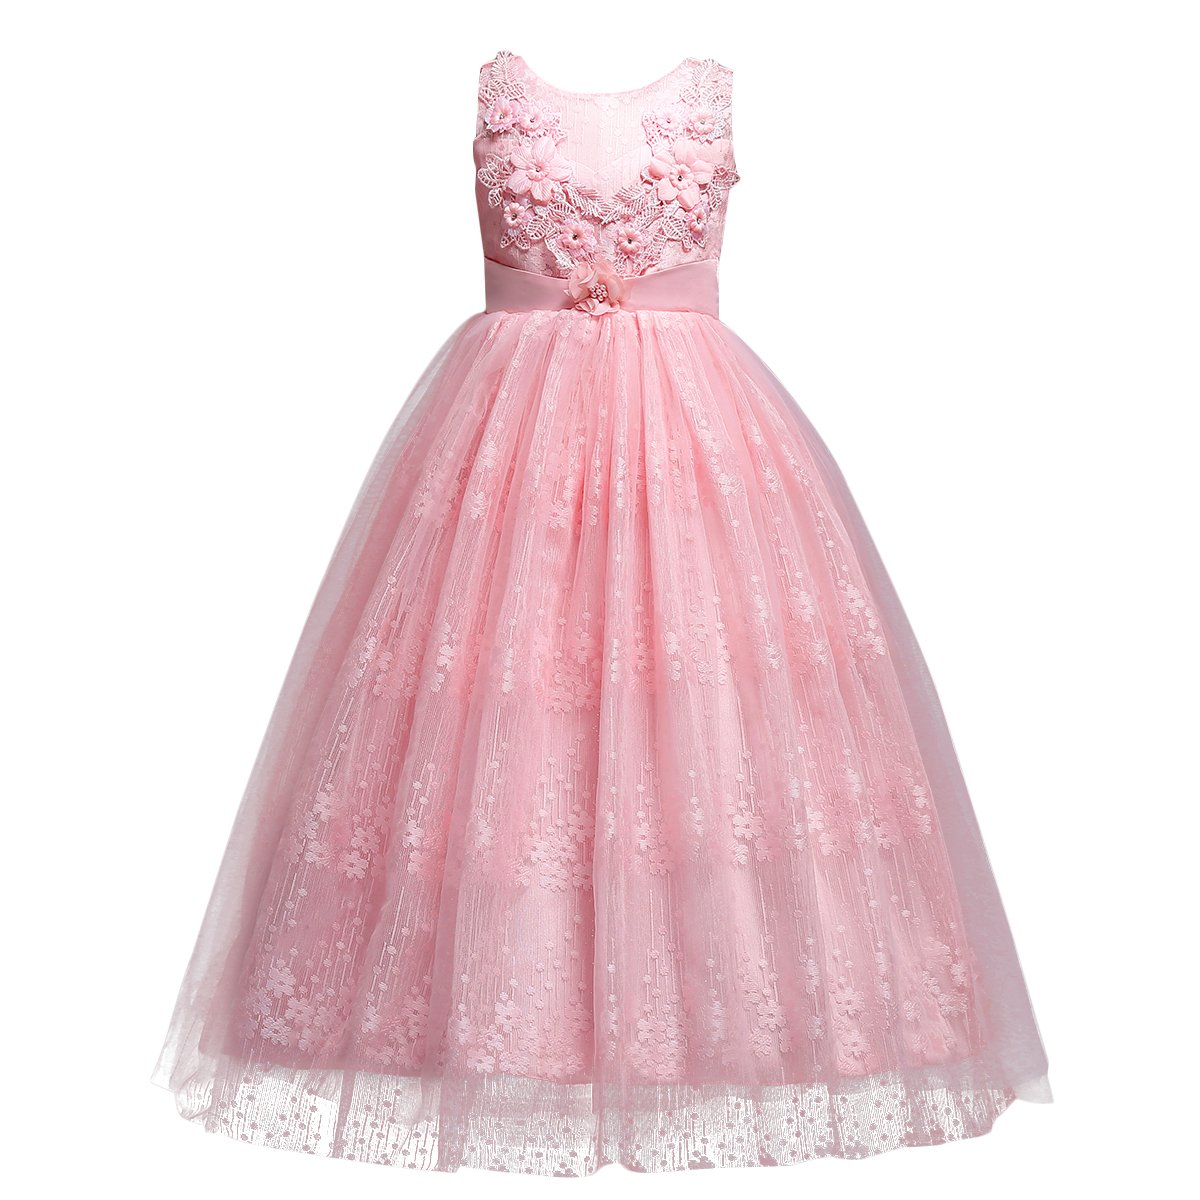 b997ddf8d26f4e Amazon.com: Girls Flower Vintage Lace Princess Long Dress for Kids Tulle  Pageant Formal Party Wedding Floor Dance Evening Gown: Clothing